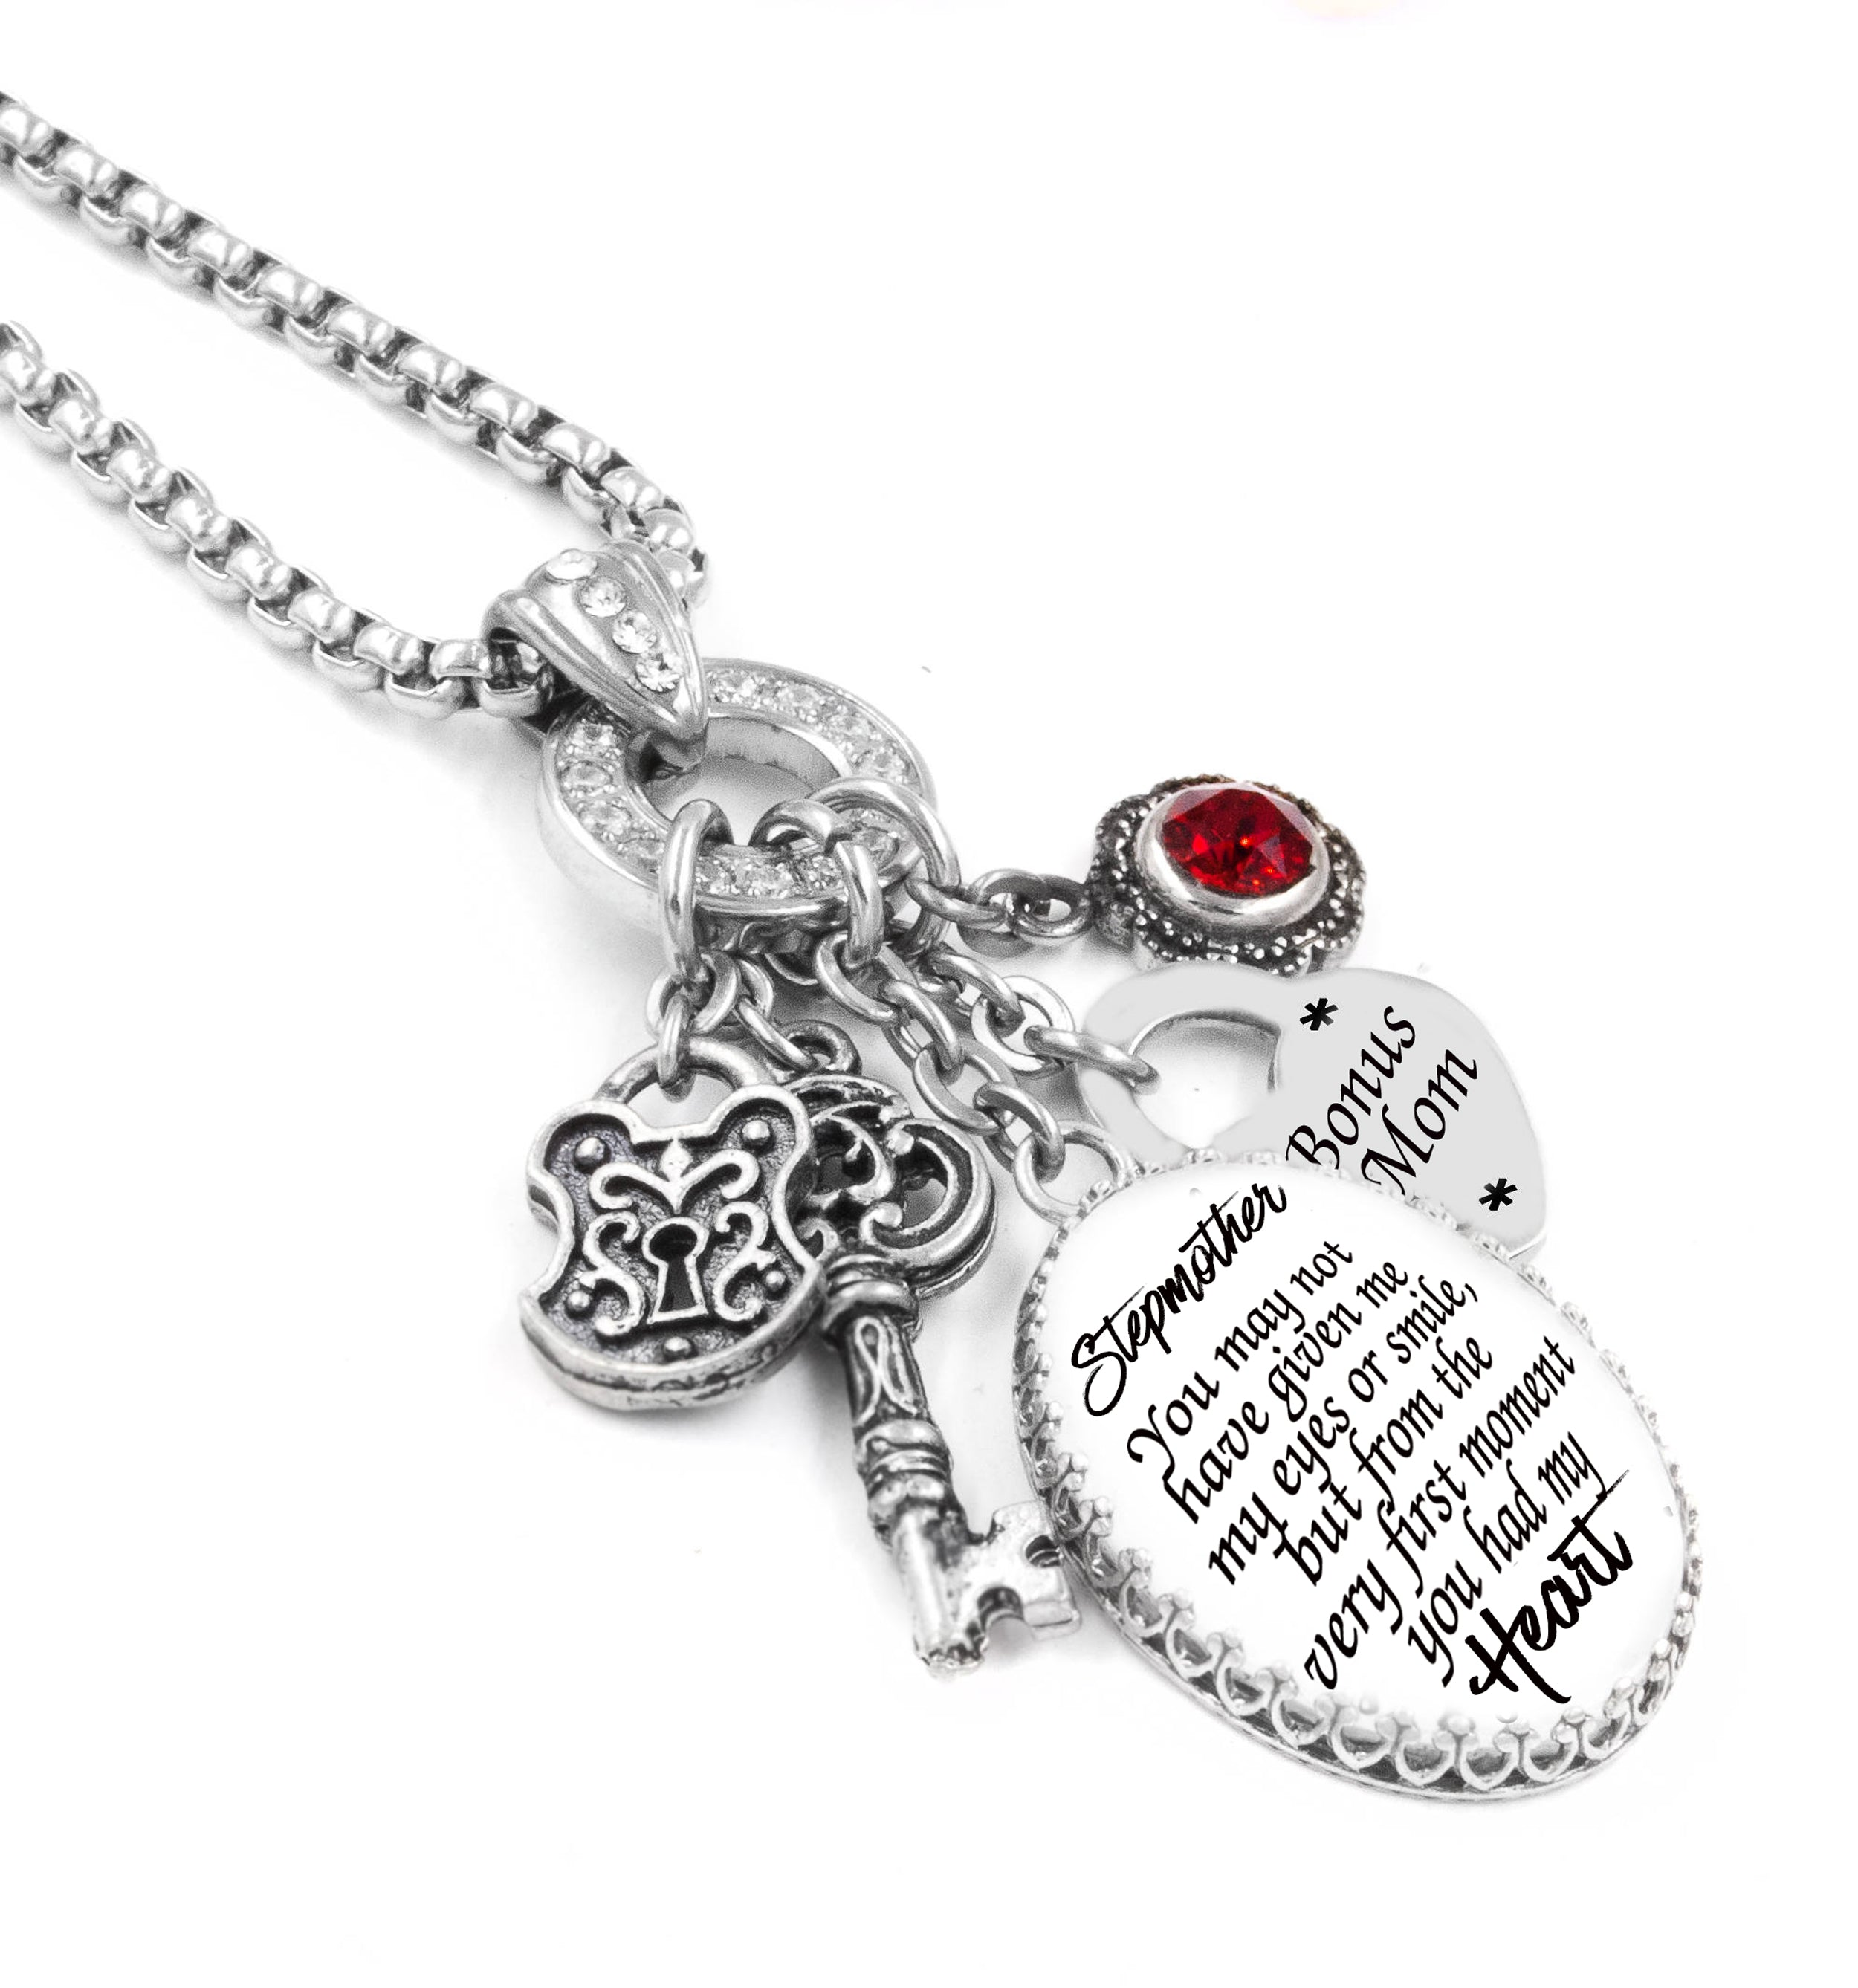 Stepmother Birthstone Necklace for Mother's Day